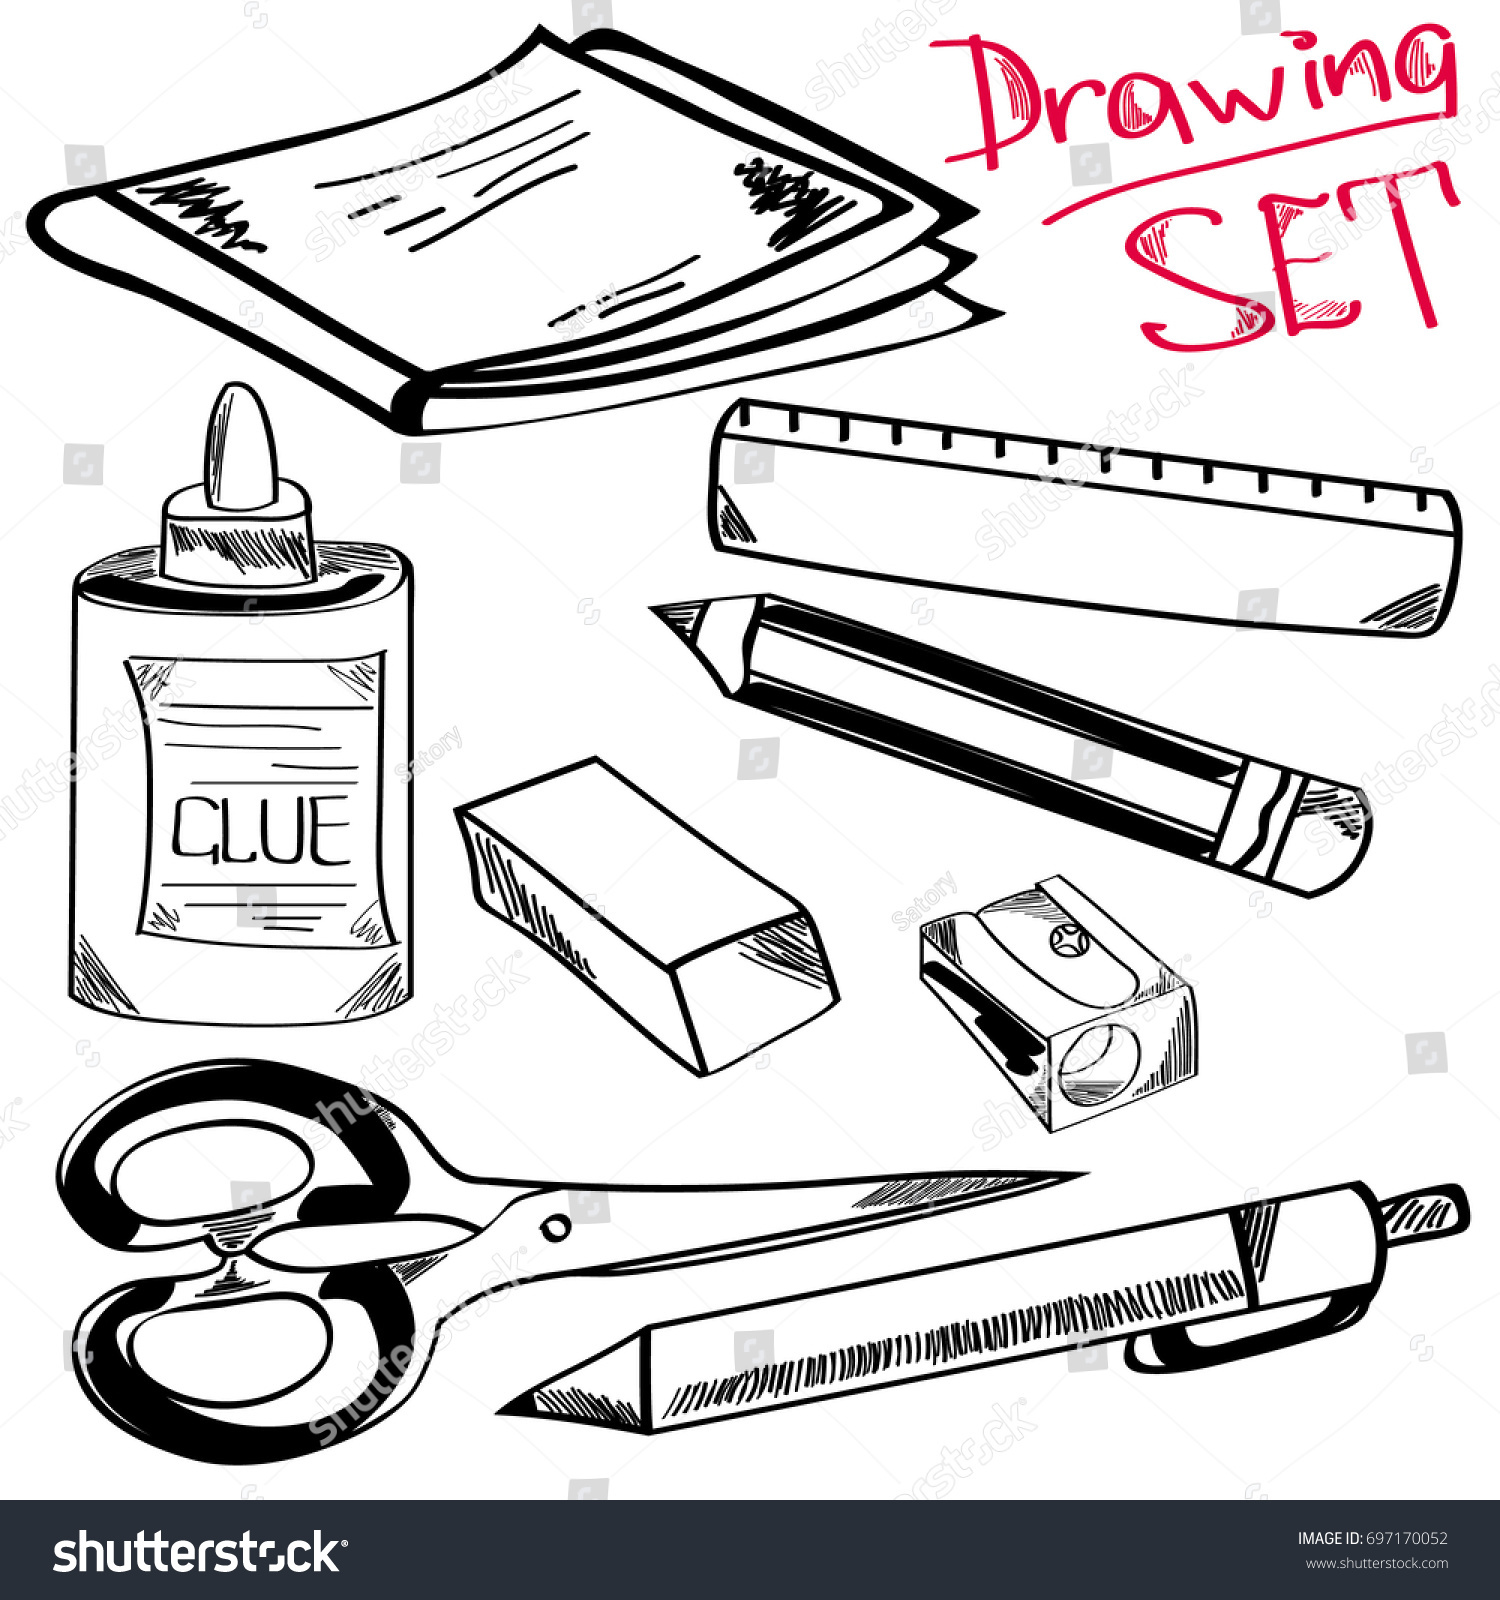 Drawing set sketching style of drawing elements notebook glue pen pencil